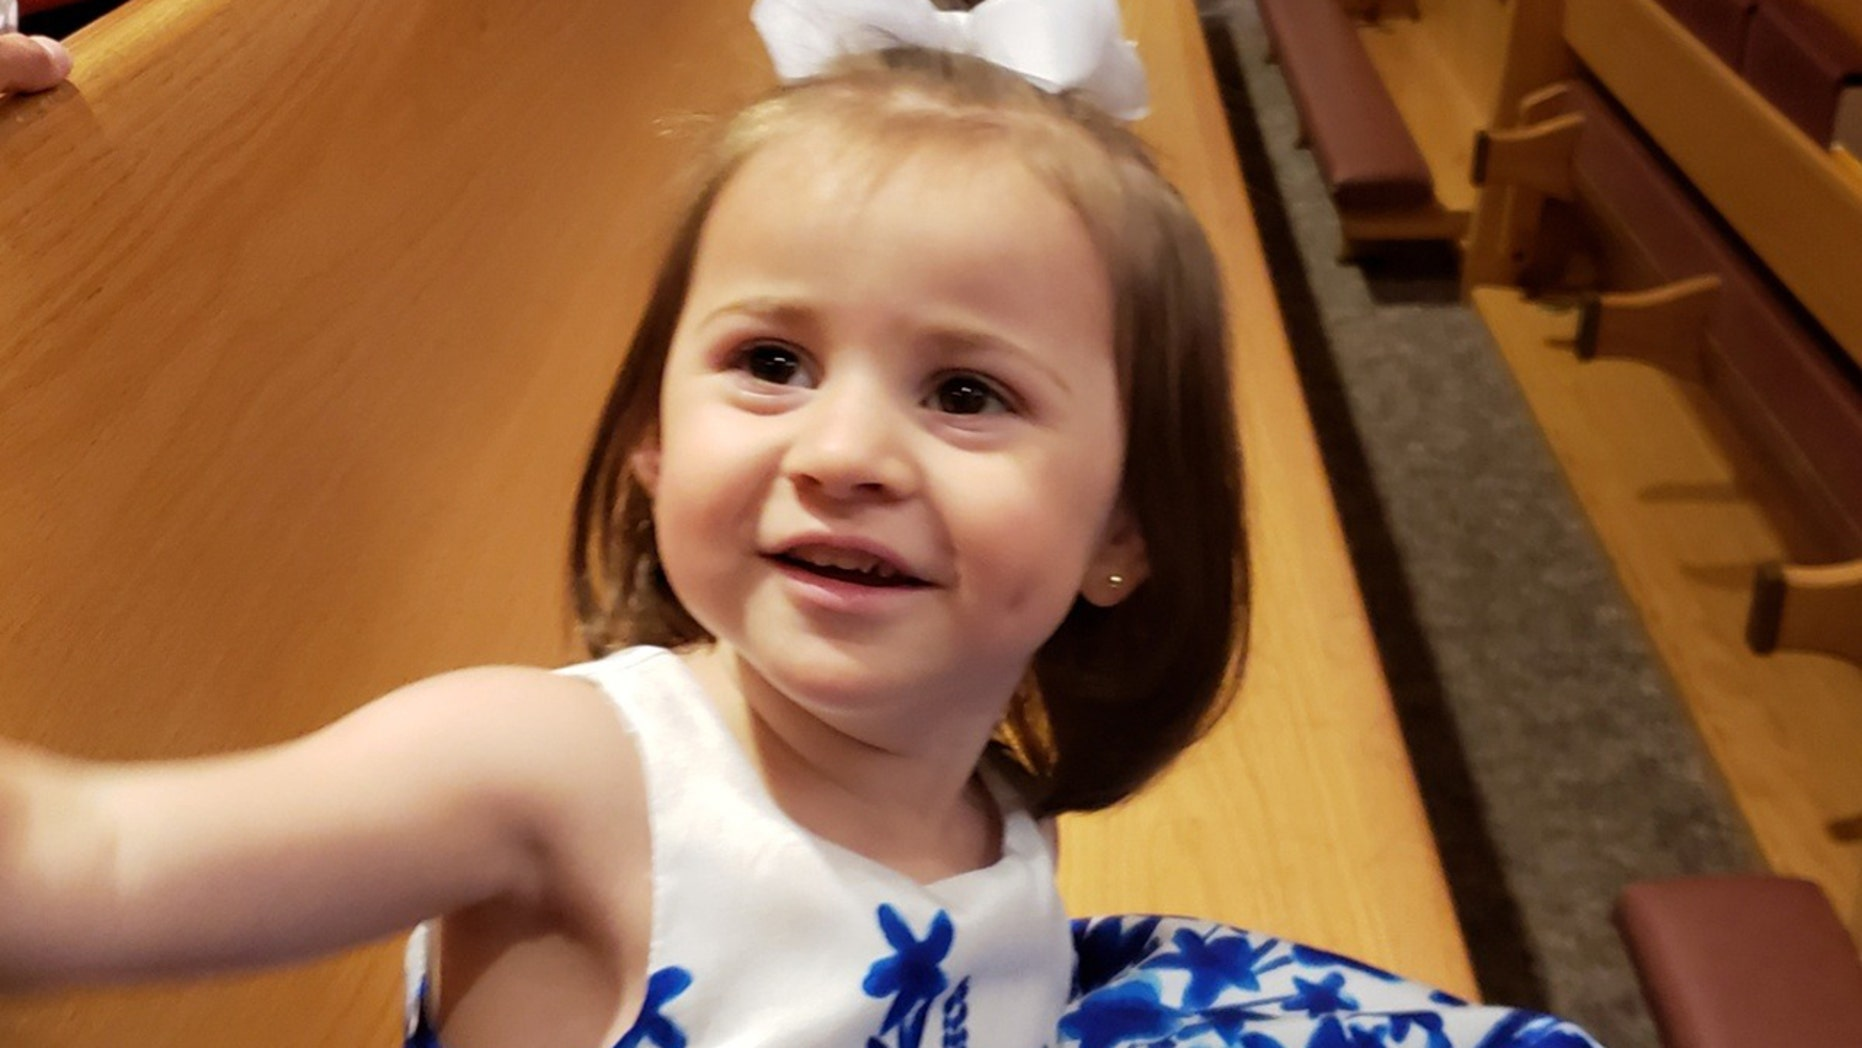 Felicity Karam, 2, died after being struck by an ice cream truck in Missouri.